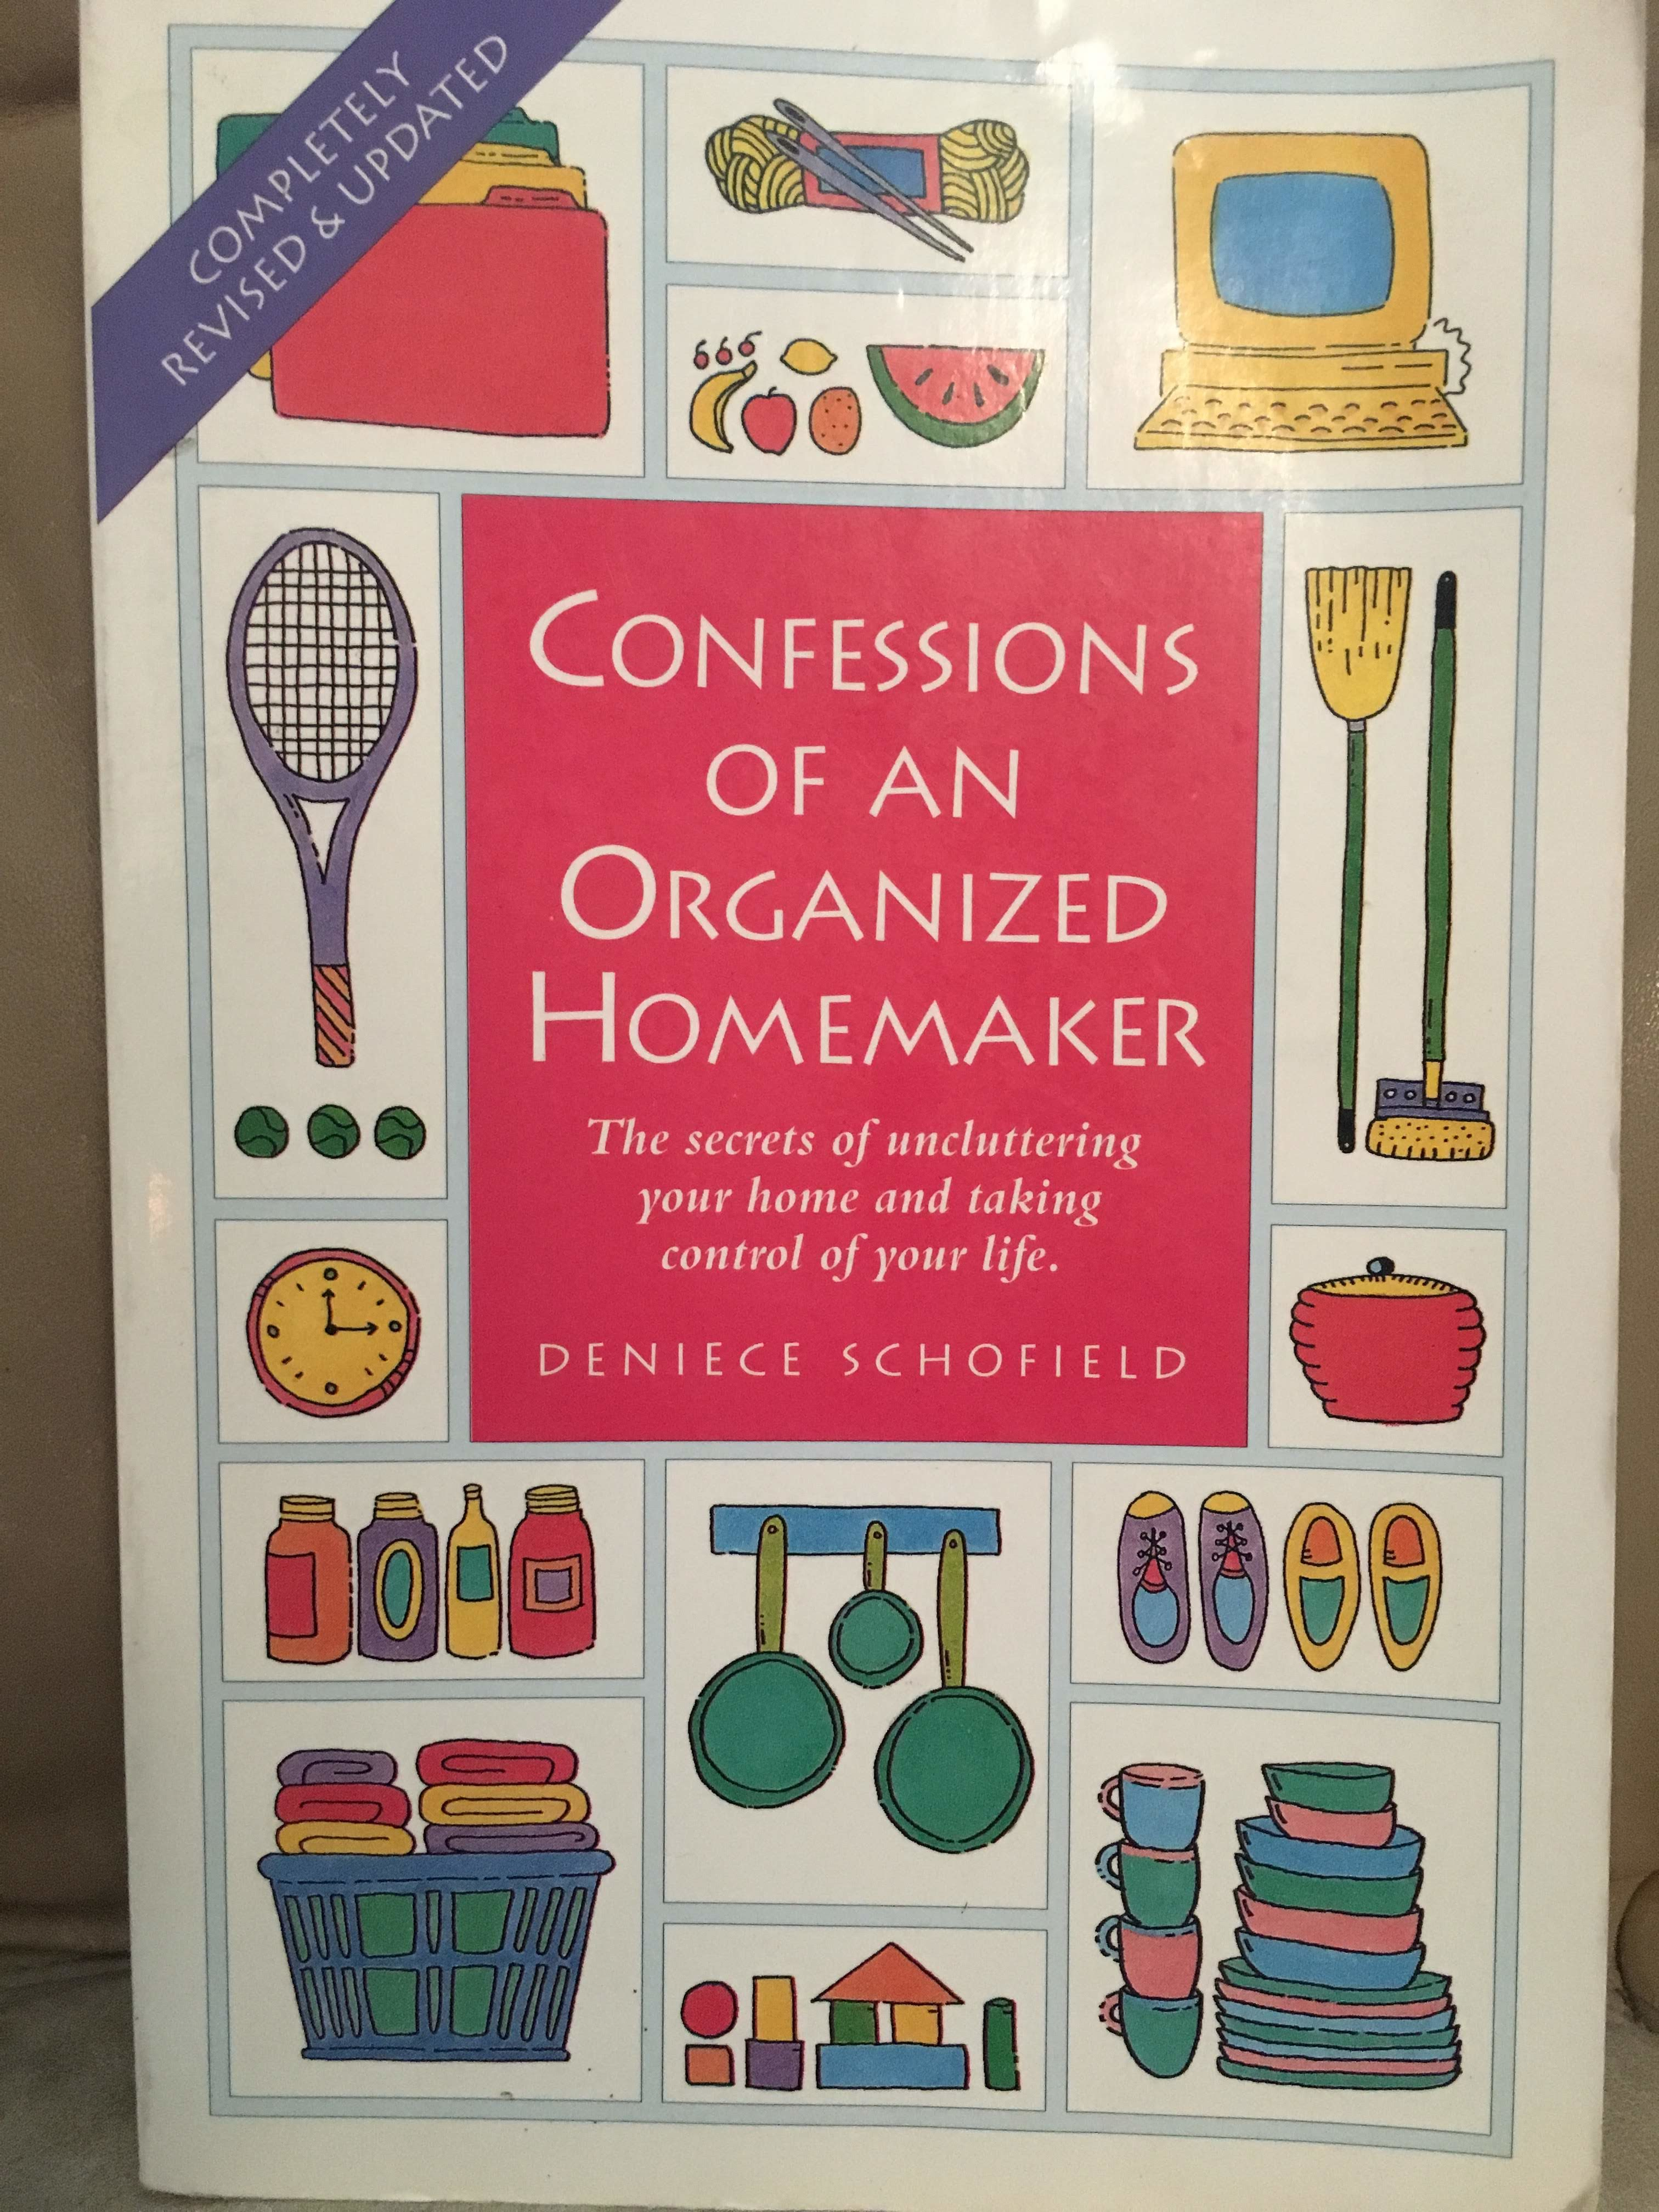 Confessions of an Organized Homemaker Denice Schofield Sharing Your Home with Children Getting Organized The Best Unschooling Books That Aren't About Unschooling Homeschooling Portland Homeschooling Resources Carolyn Groves